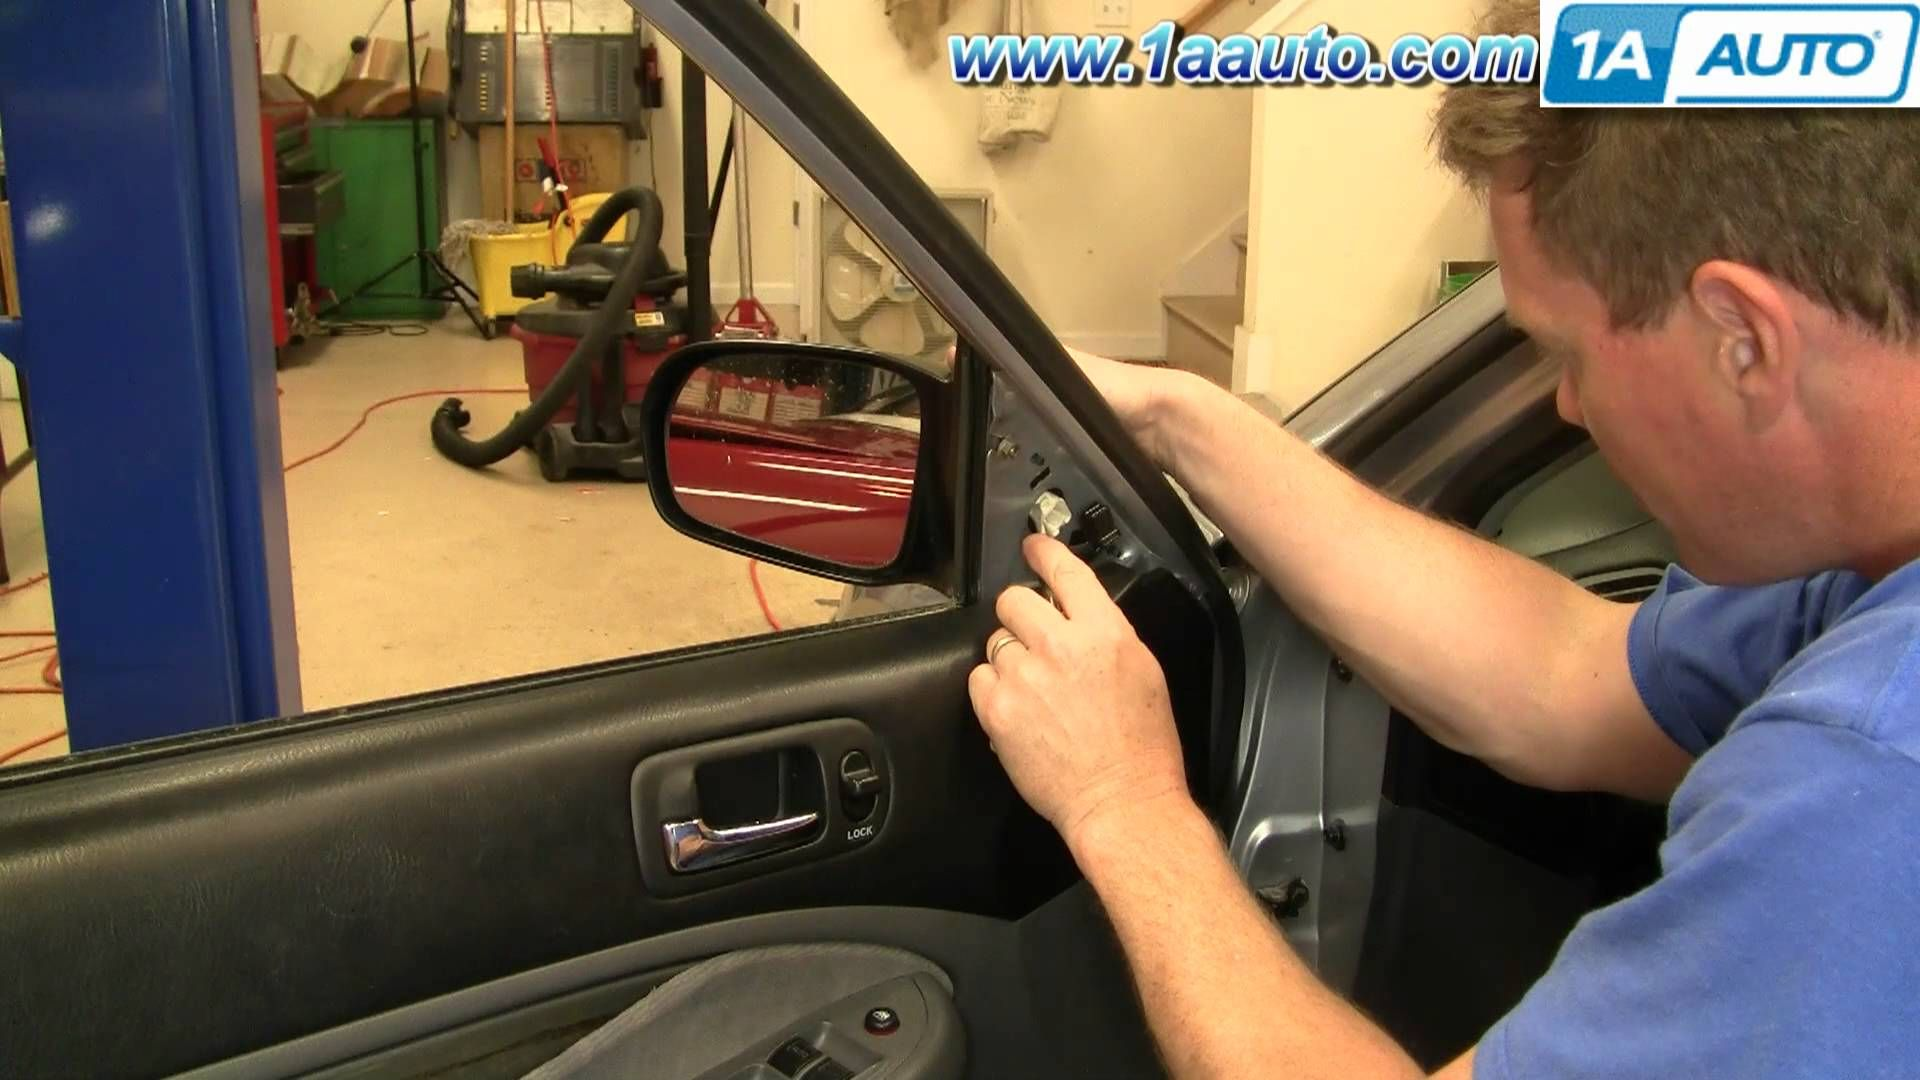 How to install replace headlight and bulb honda civic sedan 01 03 how to install replace headlight and bulb honda civic sedan 01 03 1aauto honda civic auto repair videos pinterest honda civic sedan fandeluxe Image collections